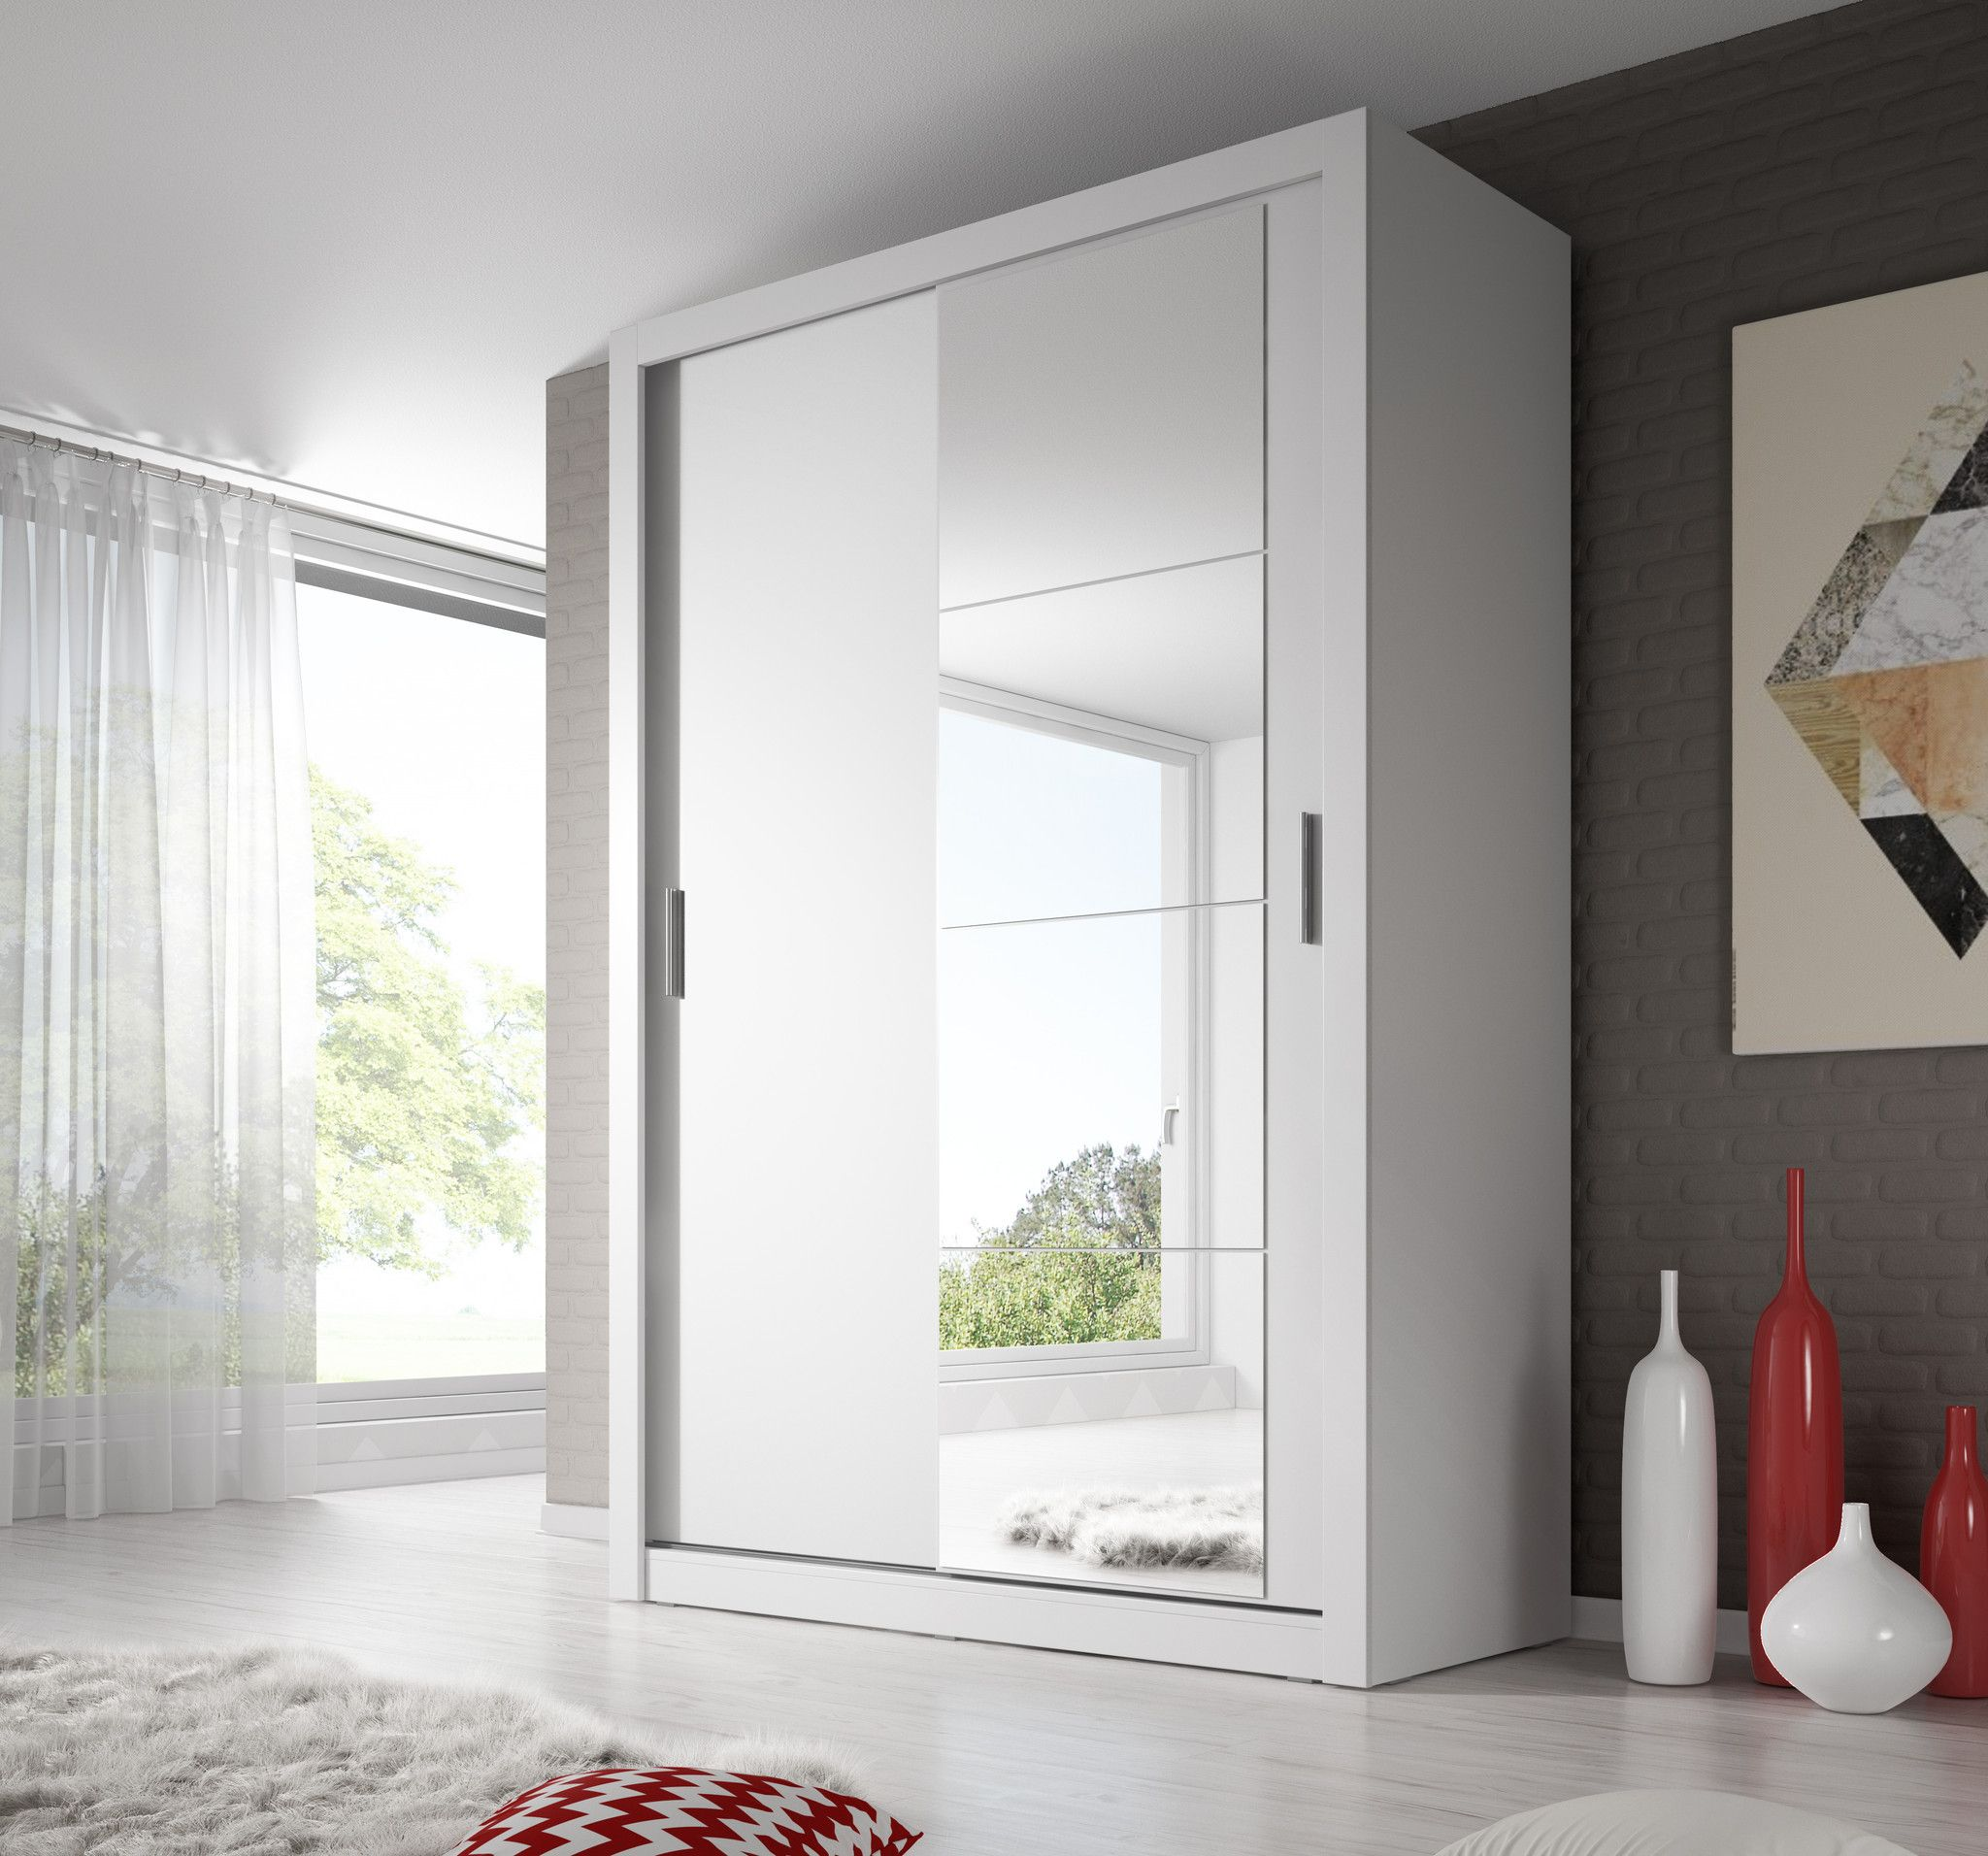 Where space is limited and appearance essential sliding door wardrobe perfect solution for any room saving on the outside of also arti white cm in bedrooms rh pinterest